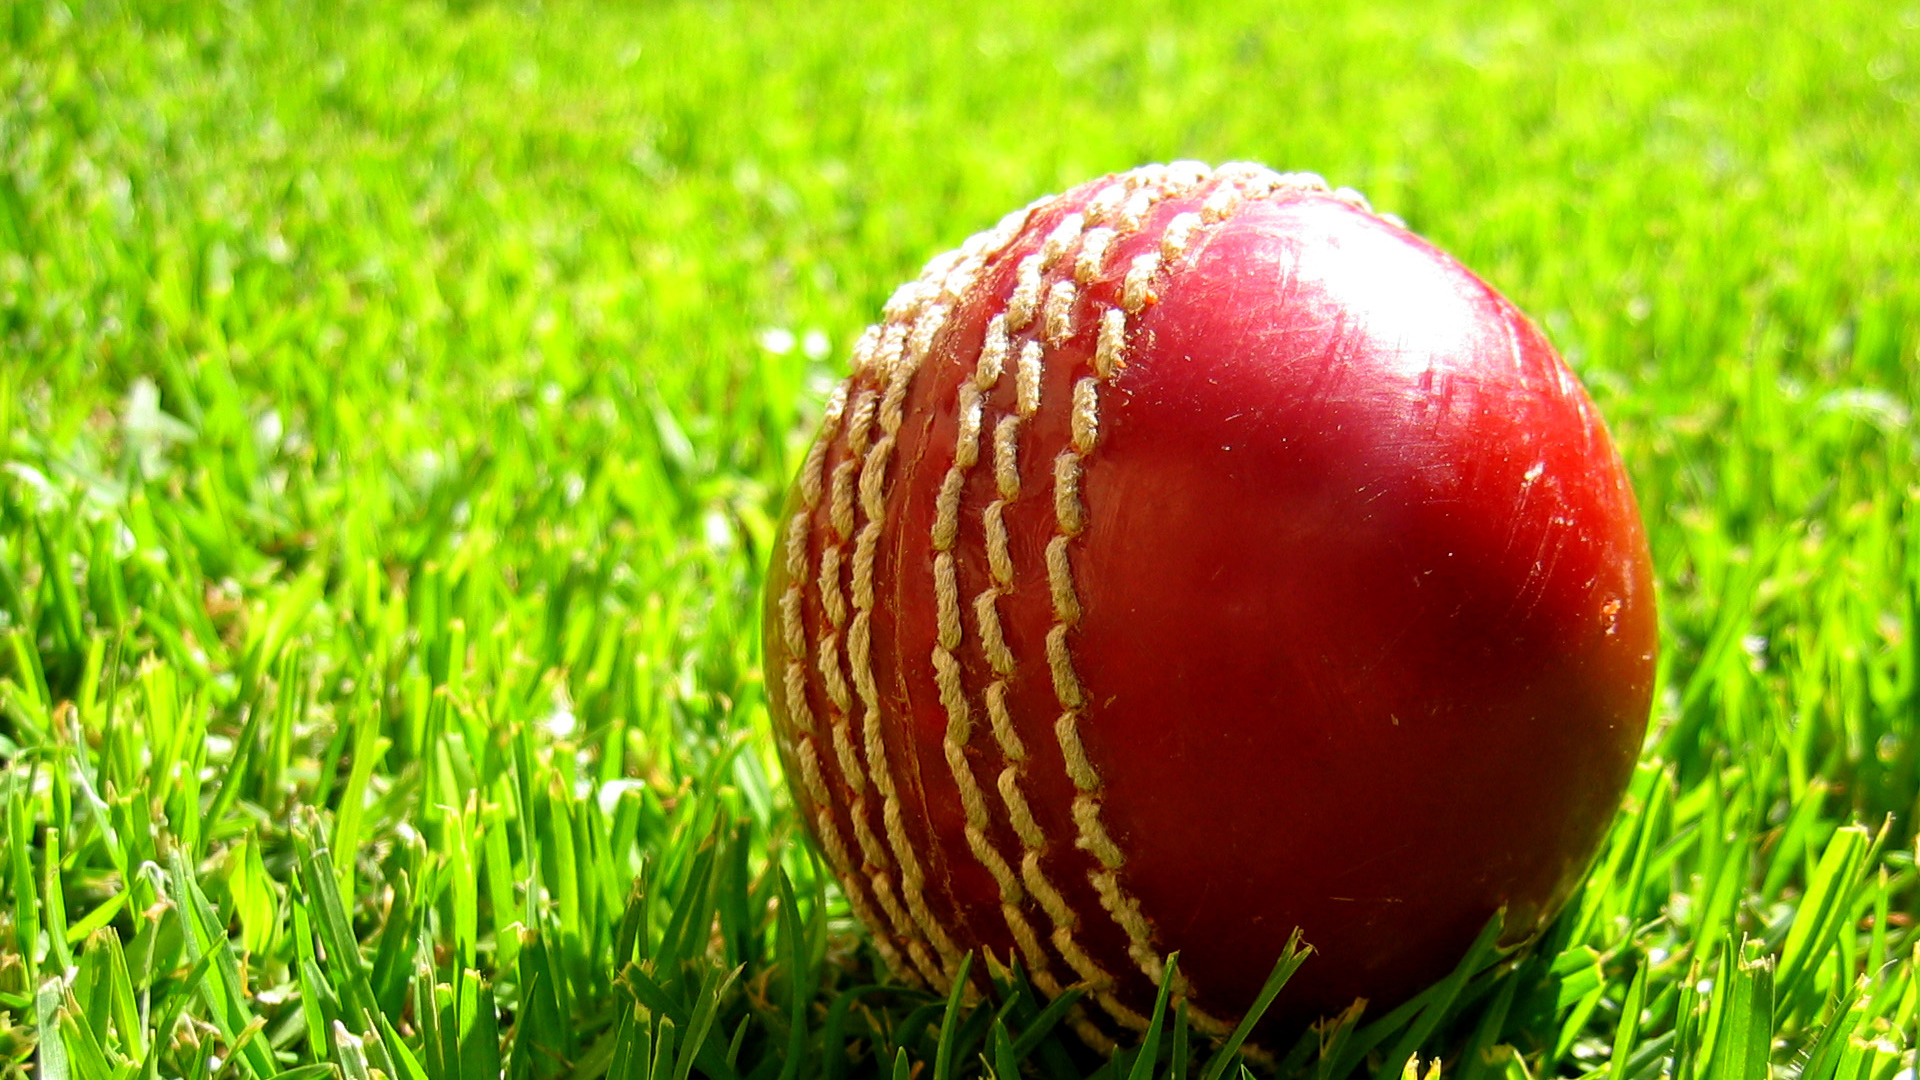 Cricket Ball Wallpaper